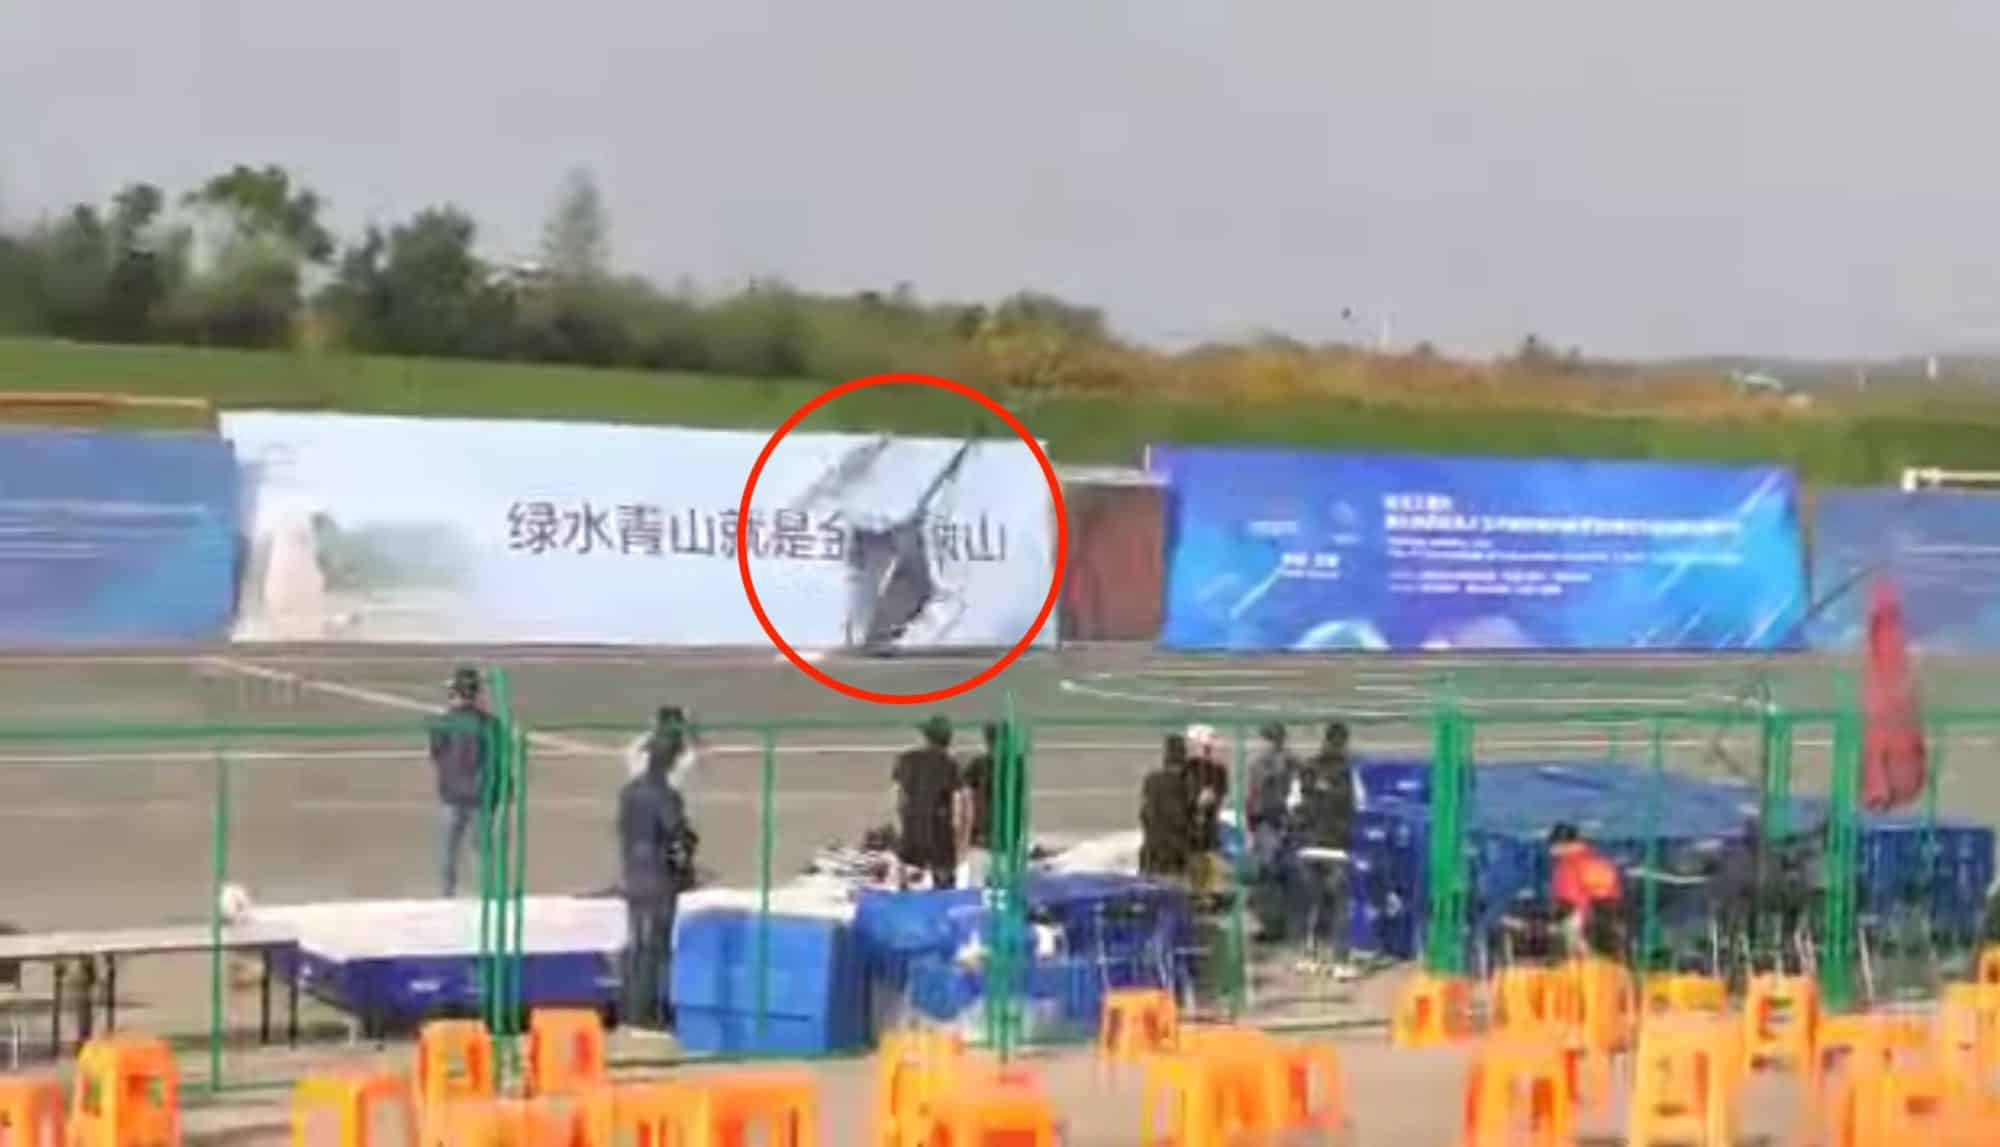 Helicopter drone crashes during airshow in China